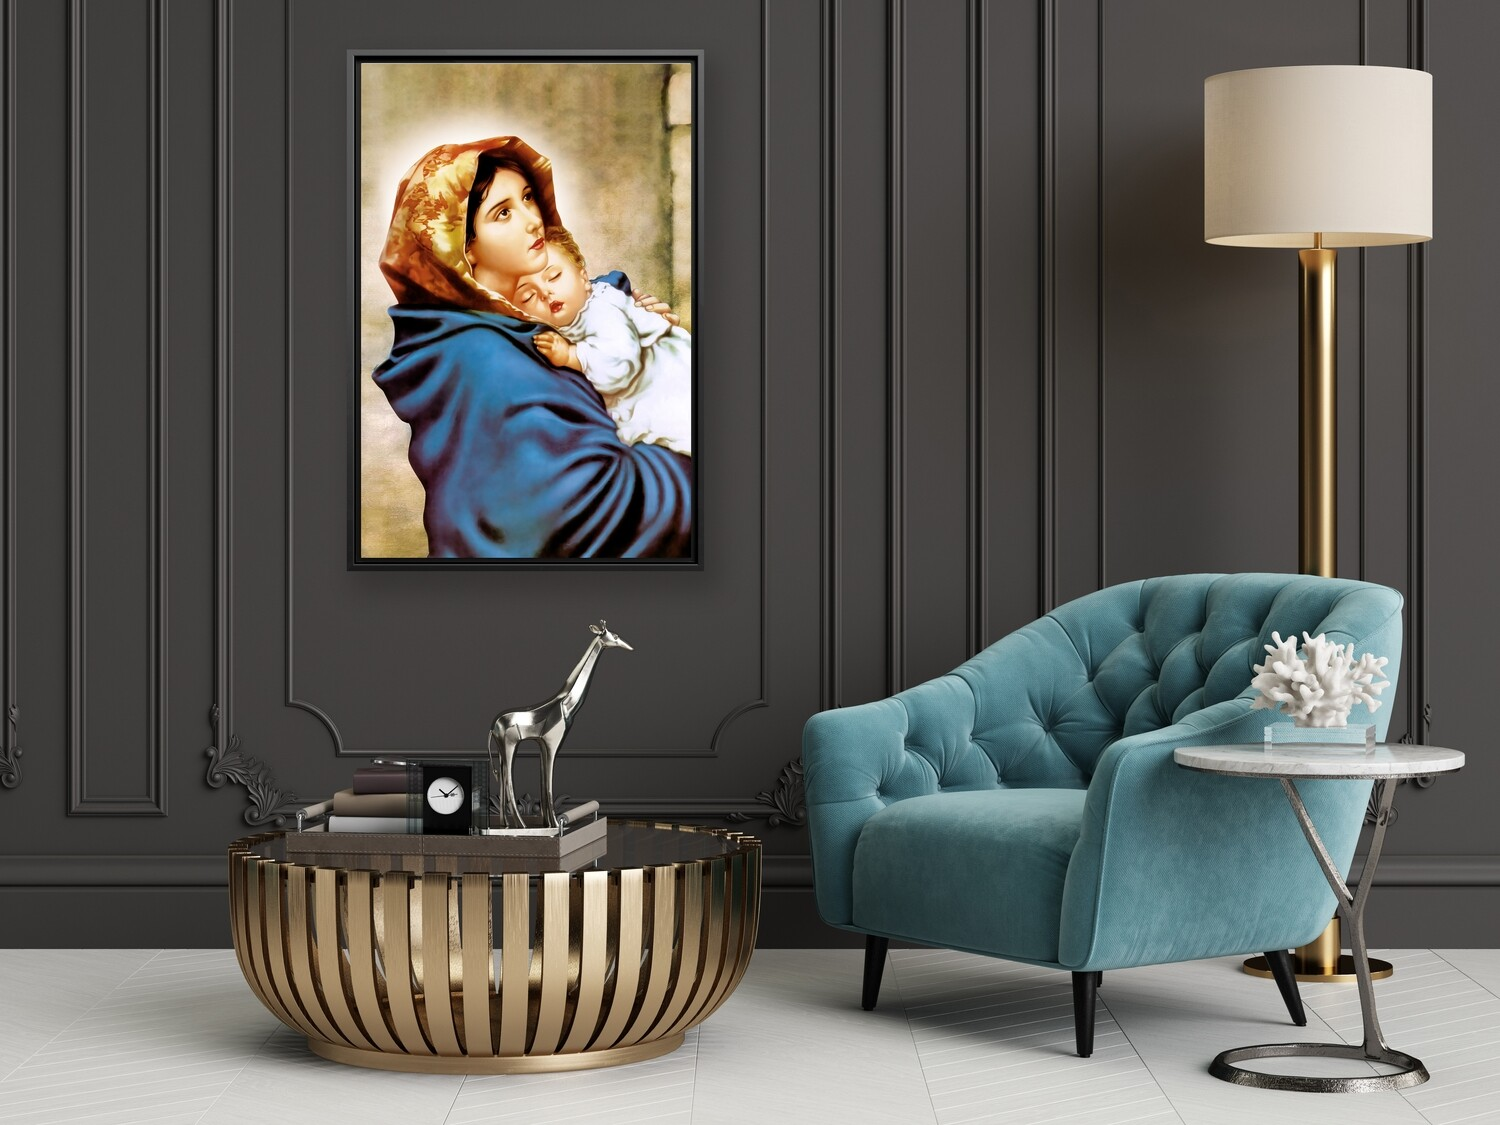 Virgin Mary Baby Jesus Painting |Framed Christian Wallart |Mother Mary and Baby Jesus Picture Printed on  Acrylic Glass |Framed and Ready To Hang